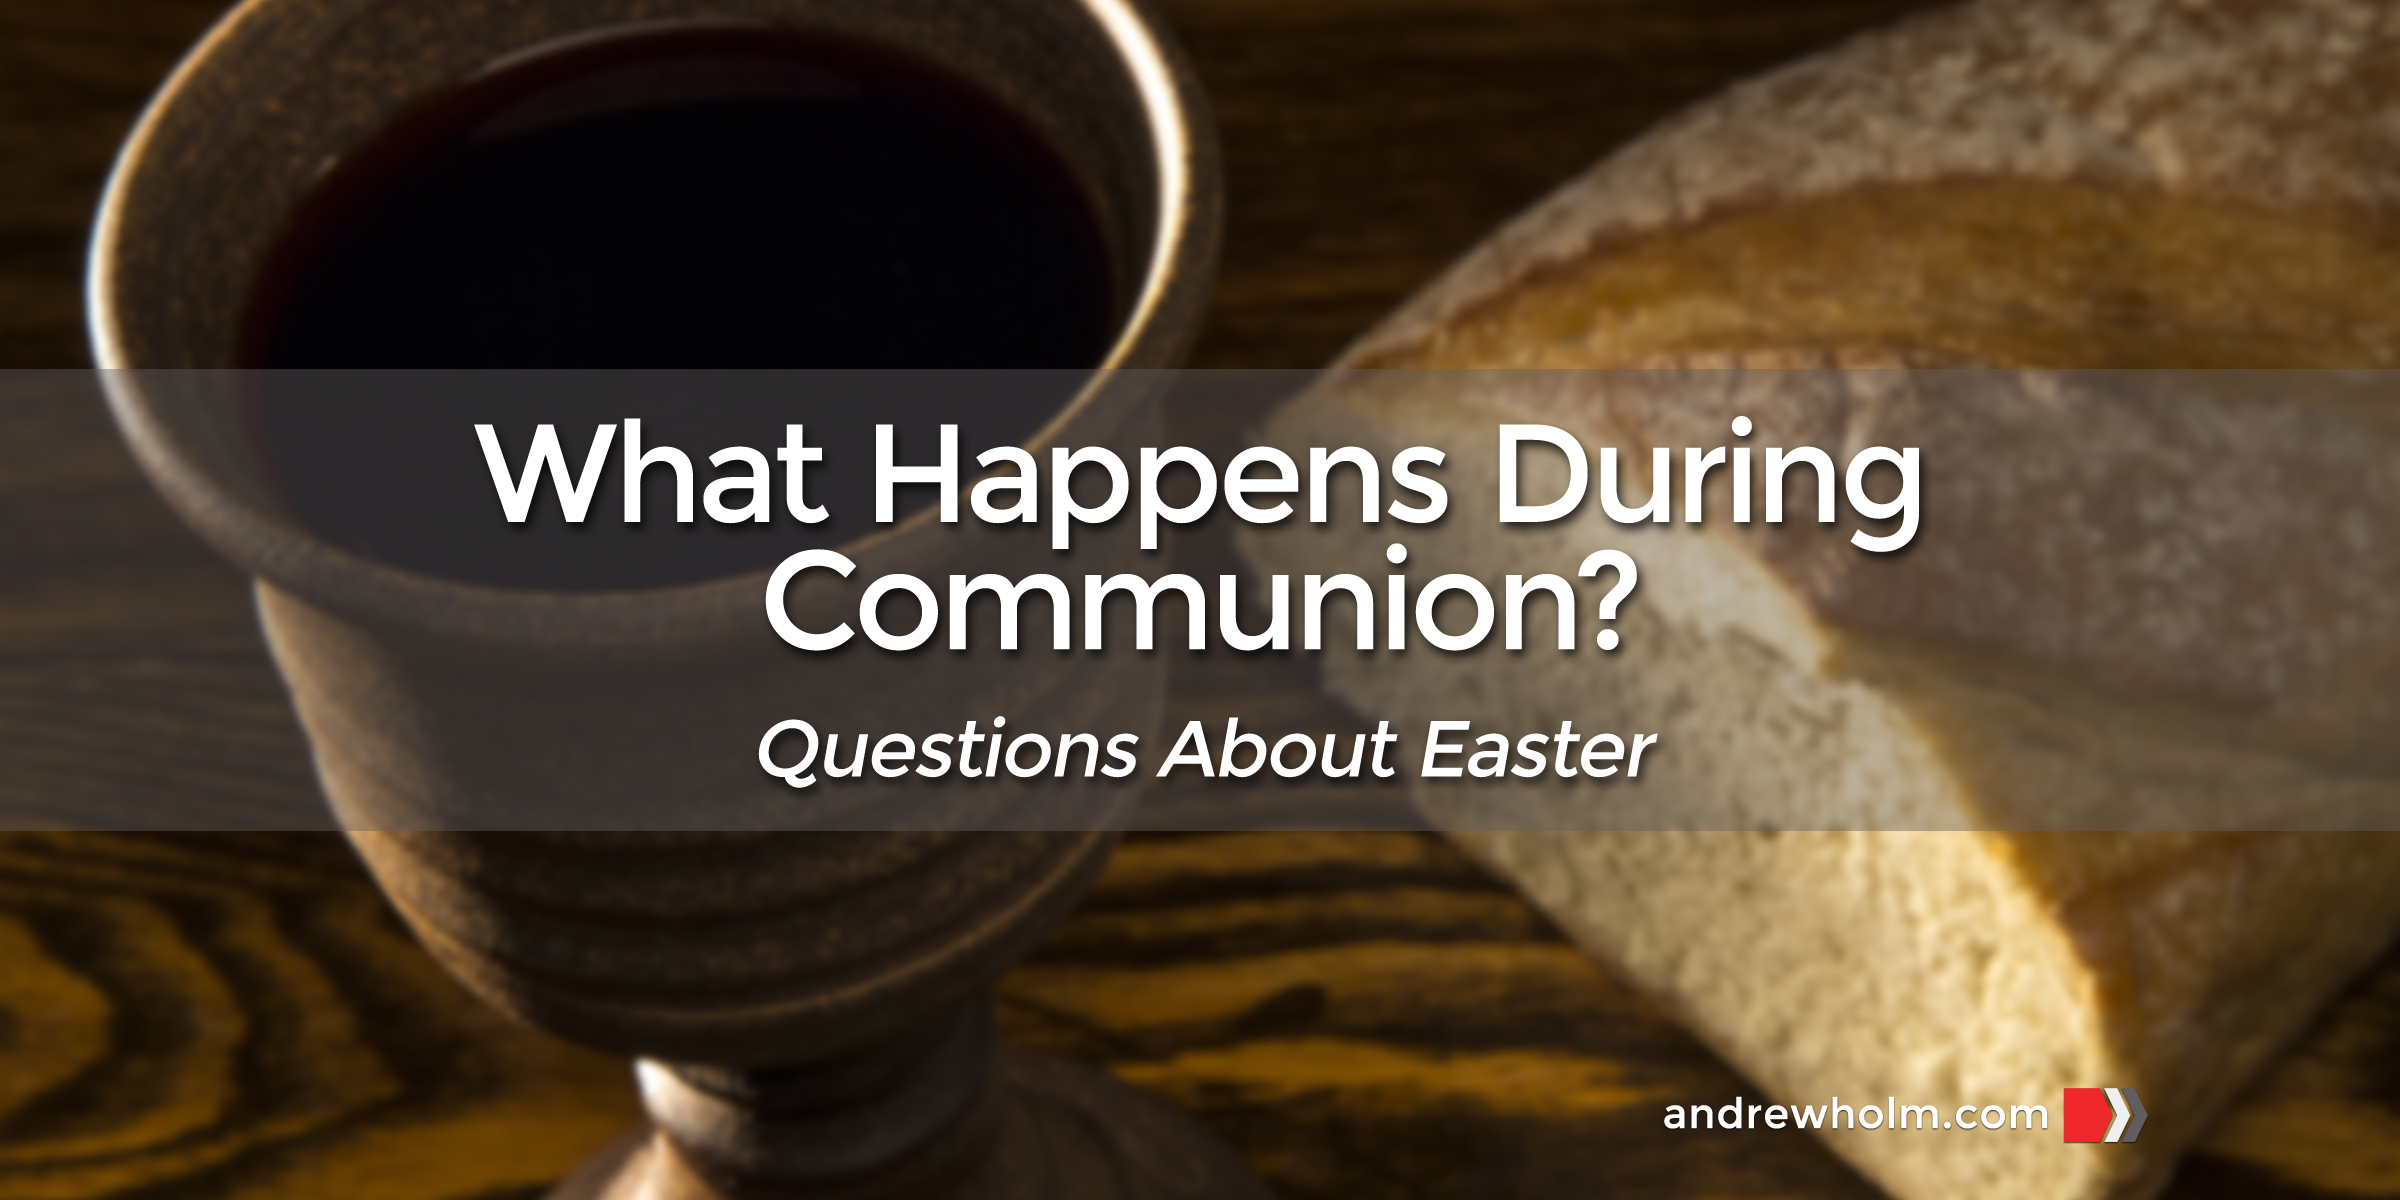 What Happens During Communion?